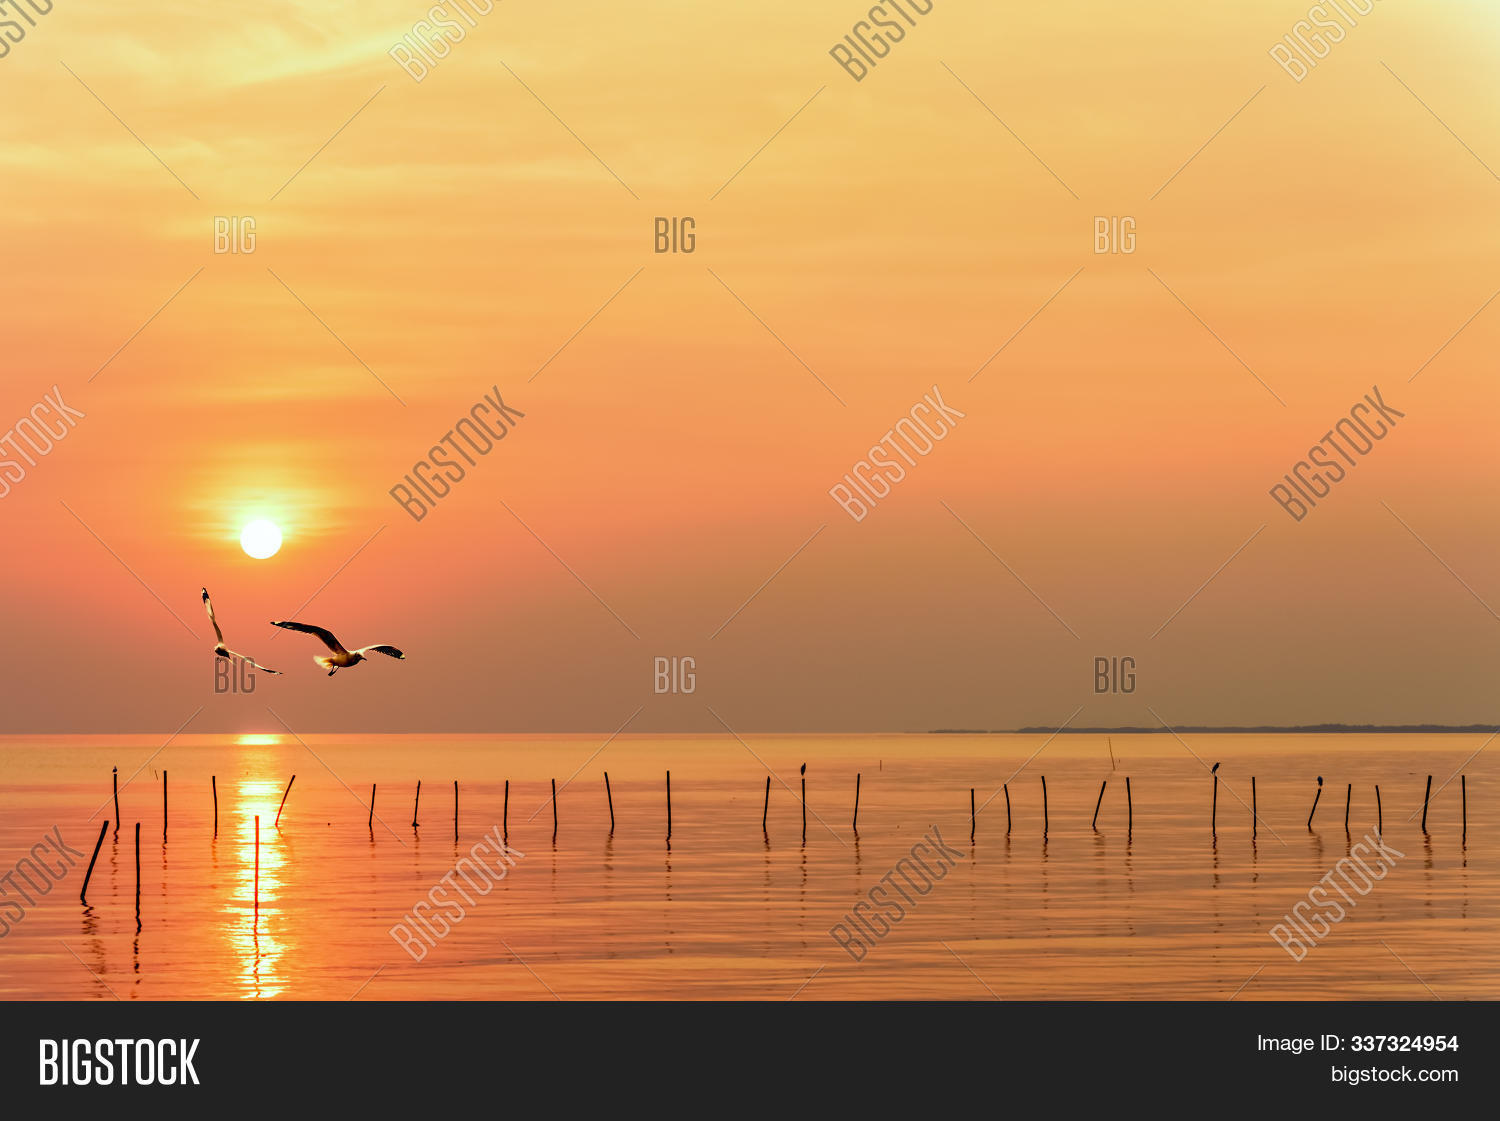 Pair of seagulls in yellow, orange sky and bright sun at sunrise, Happy animal in beautiful nature landscape for background, Two birds flying above the sea, water and horizon ocean at sunset, Thailand